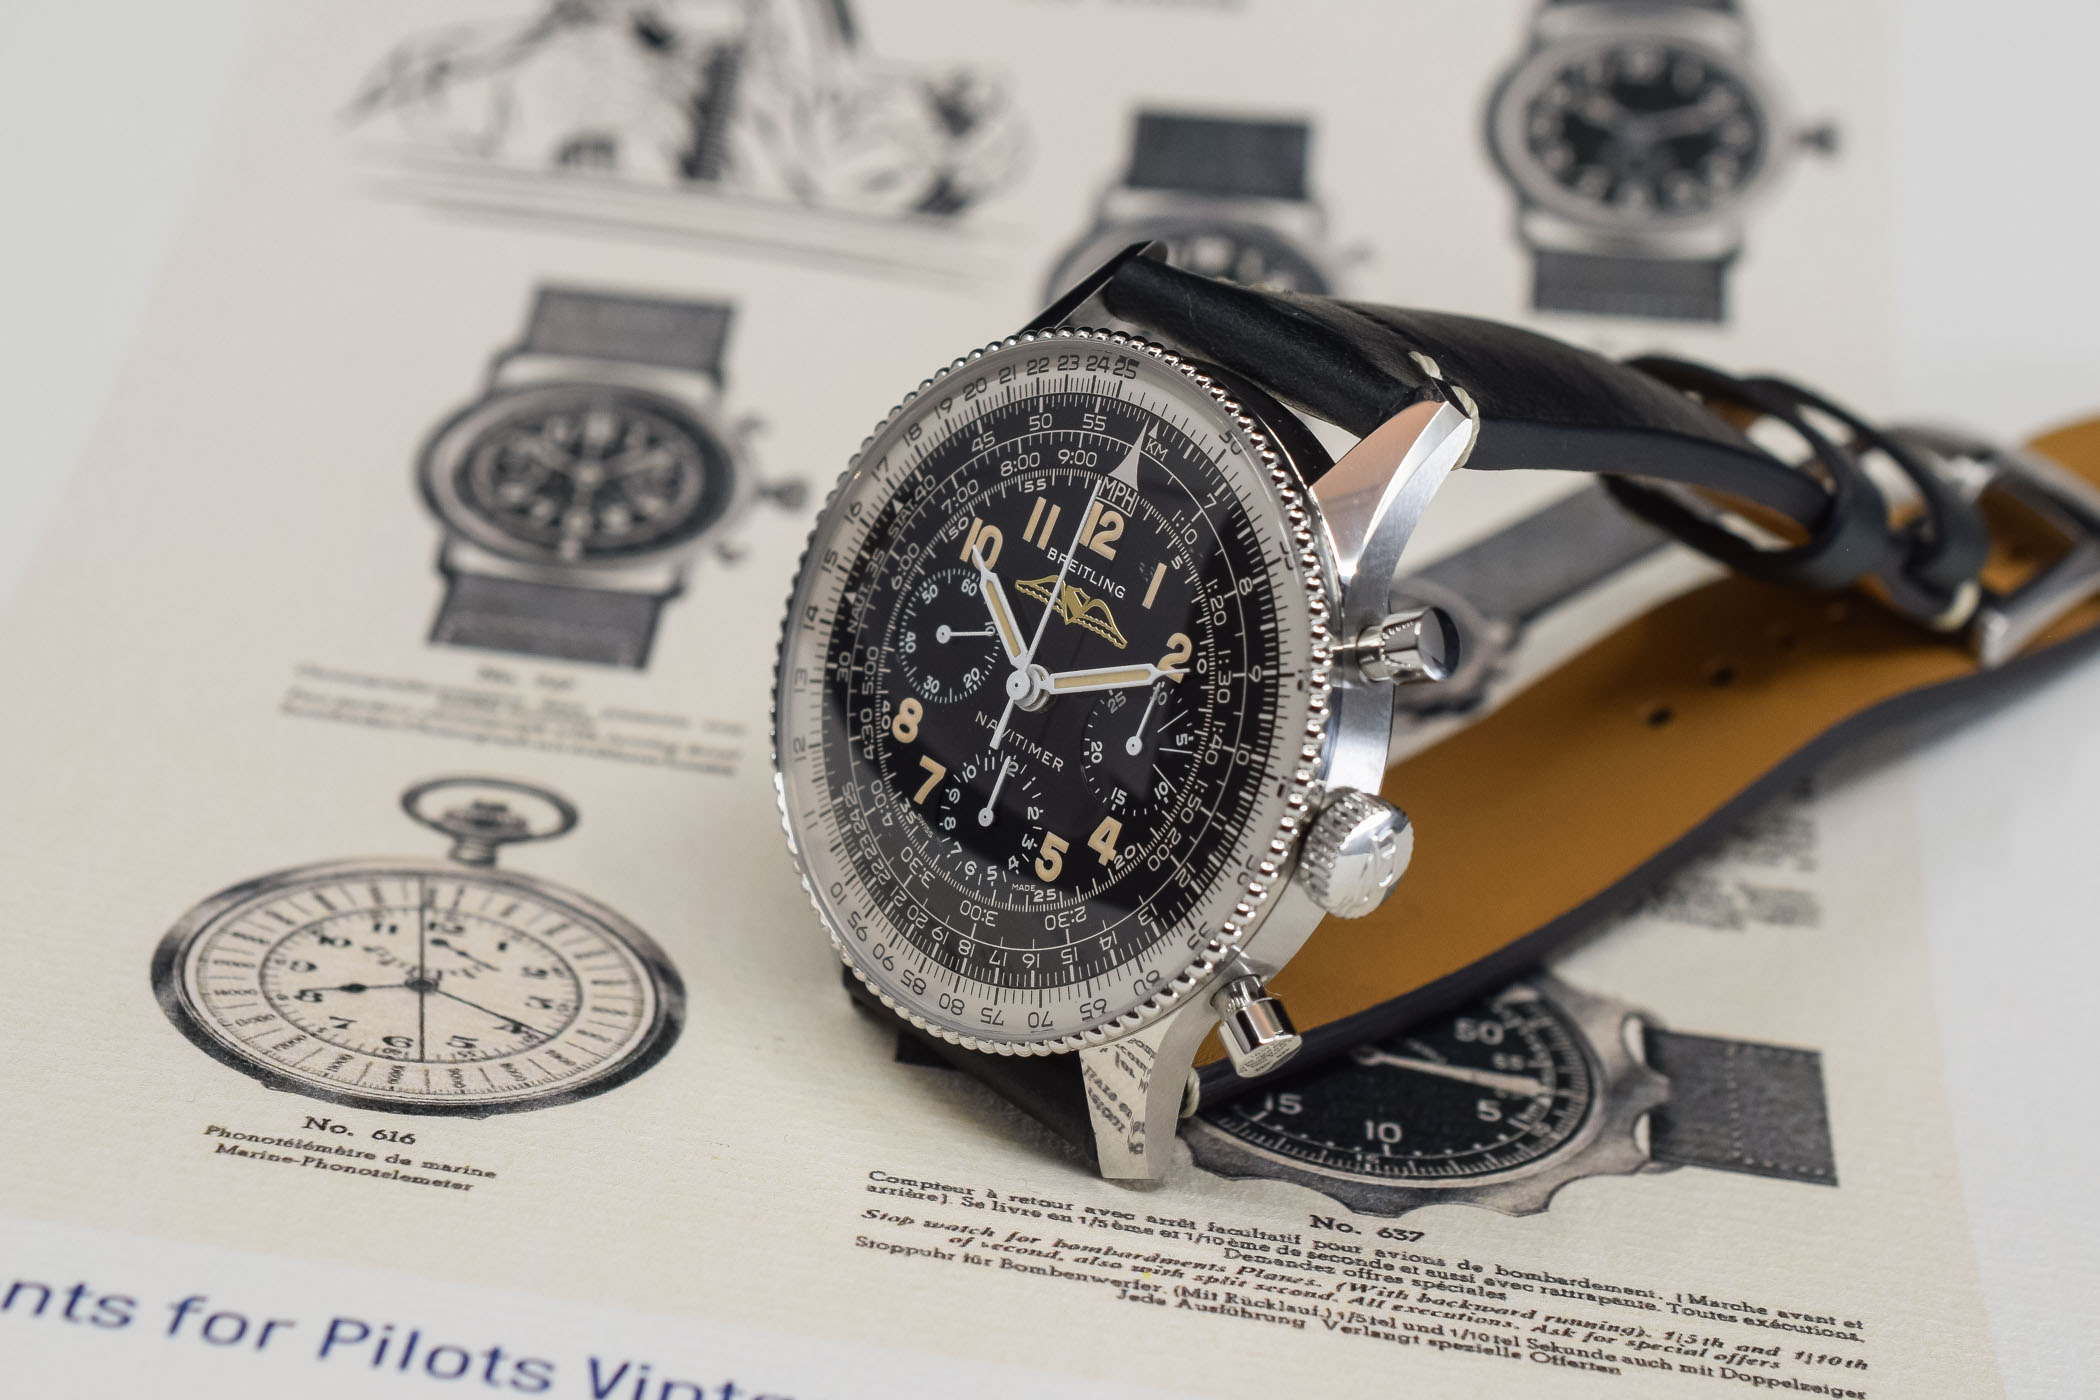 Breitling Navitimer Ref 806 1959 Re‑Edition - review - 11